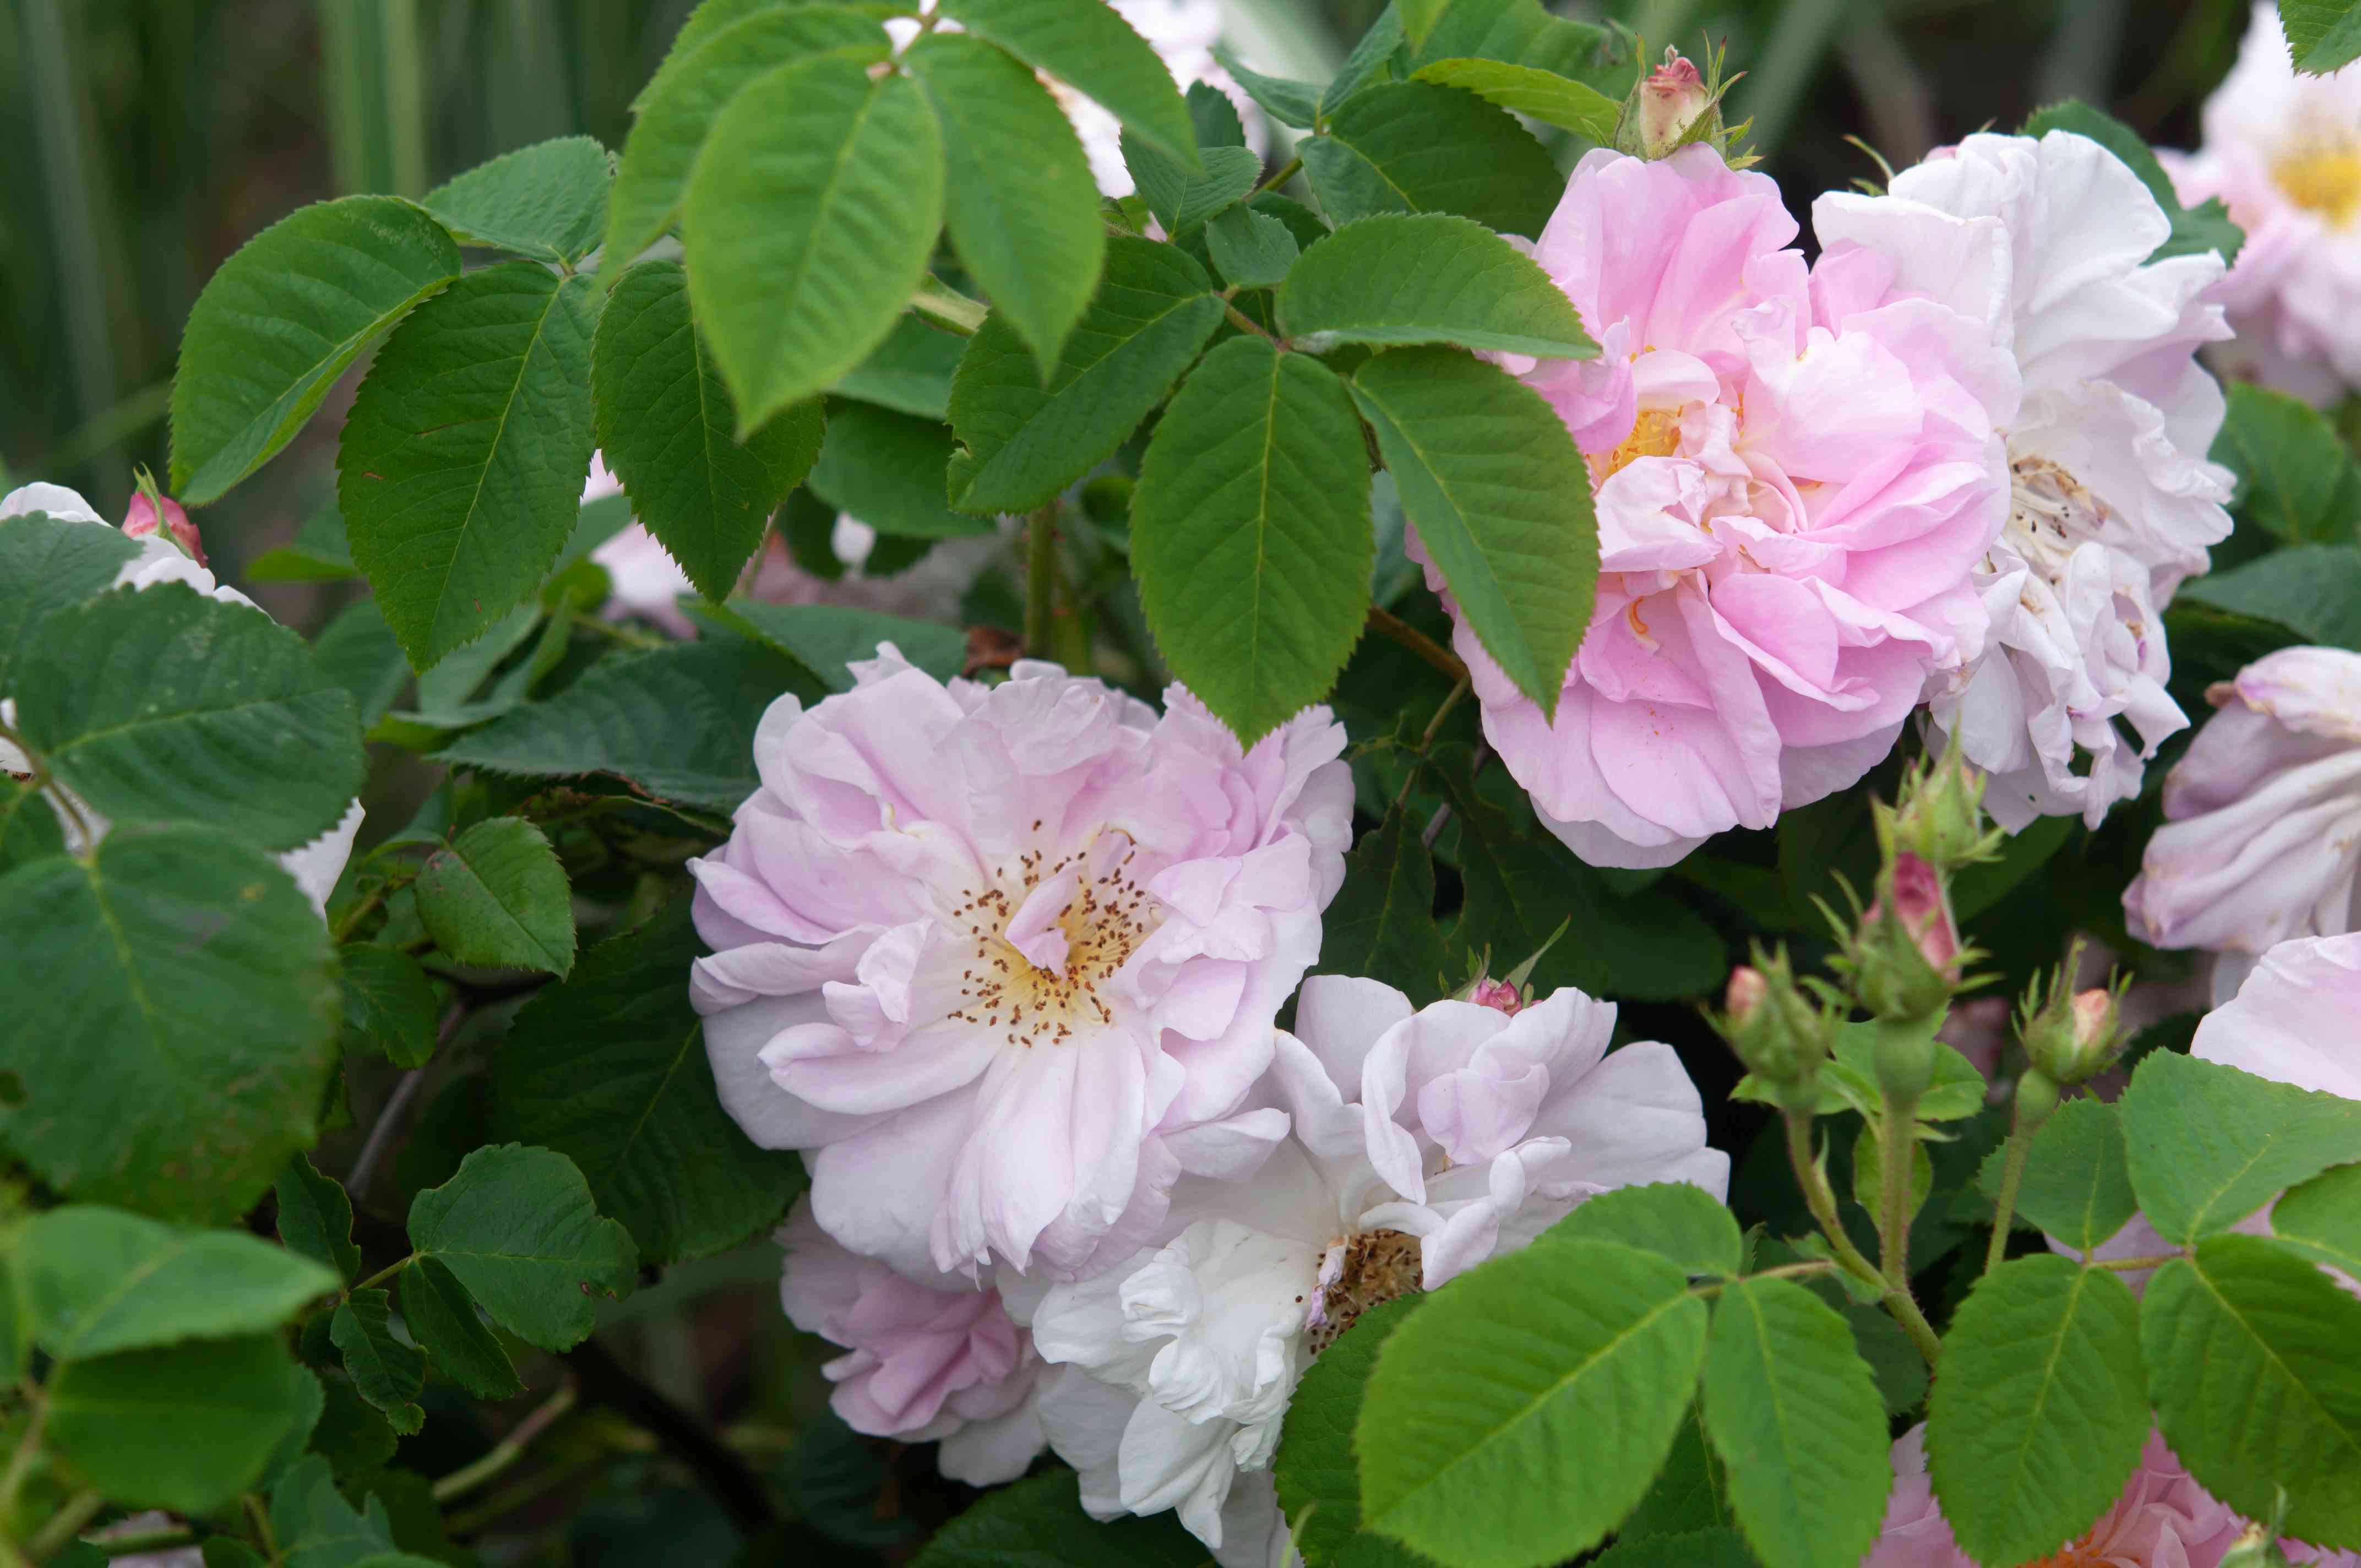 Damask roses in between leaves with white-pink flowers